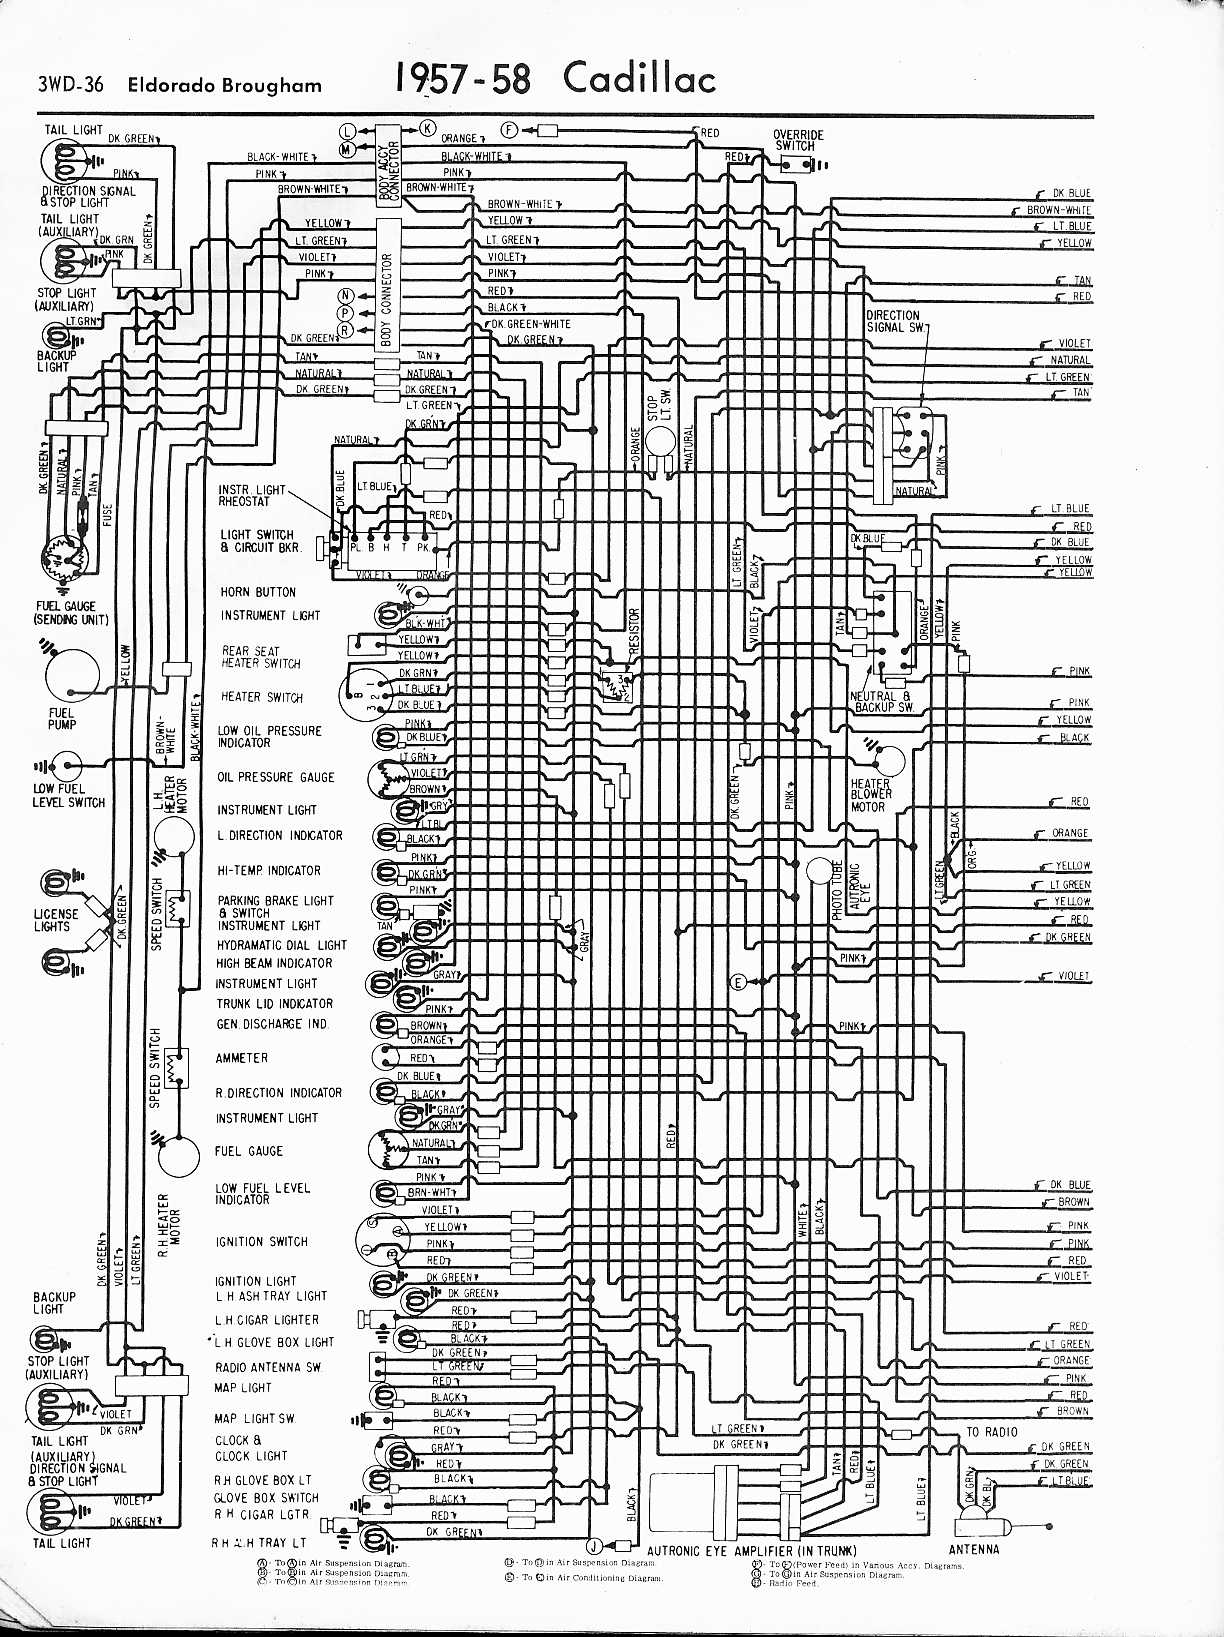 jeep tail light wiring diagram on 1955 cadillac wiring diagram rh savitrigroup co